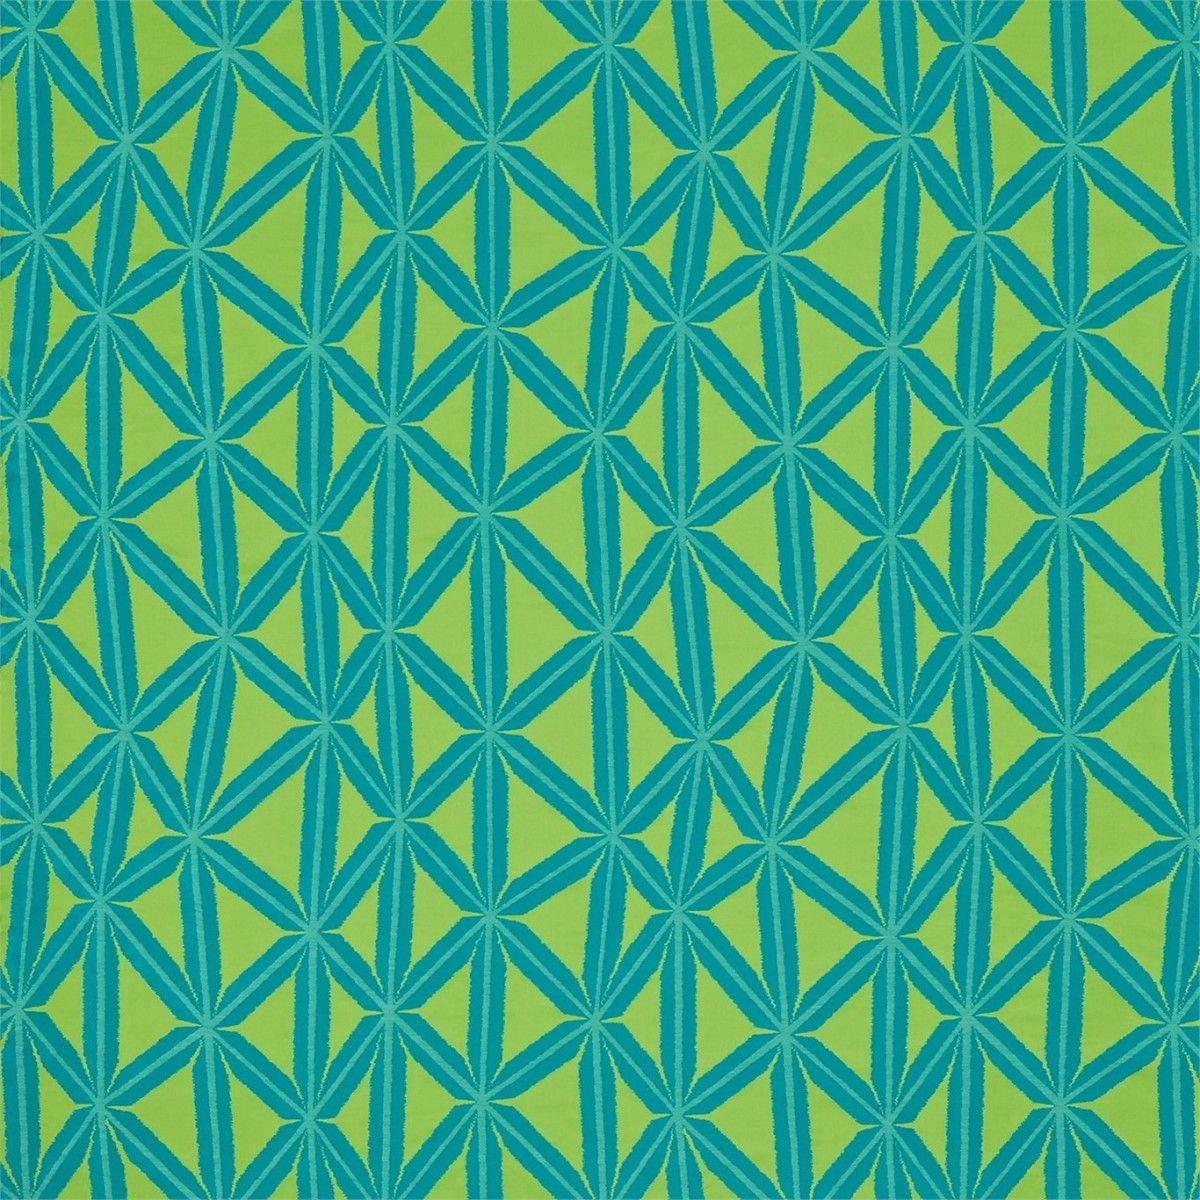 Products harlequin designer fabrics and wallpapers paradise - Rumbia Fabric In Lagoon Gooseberry